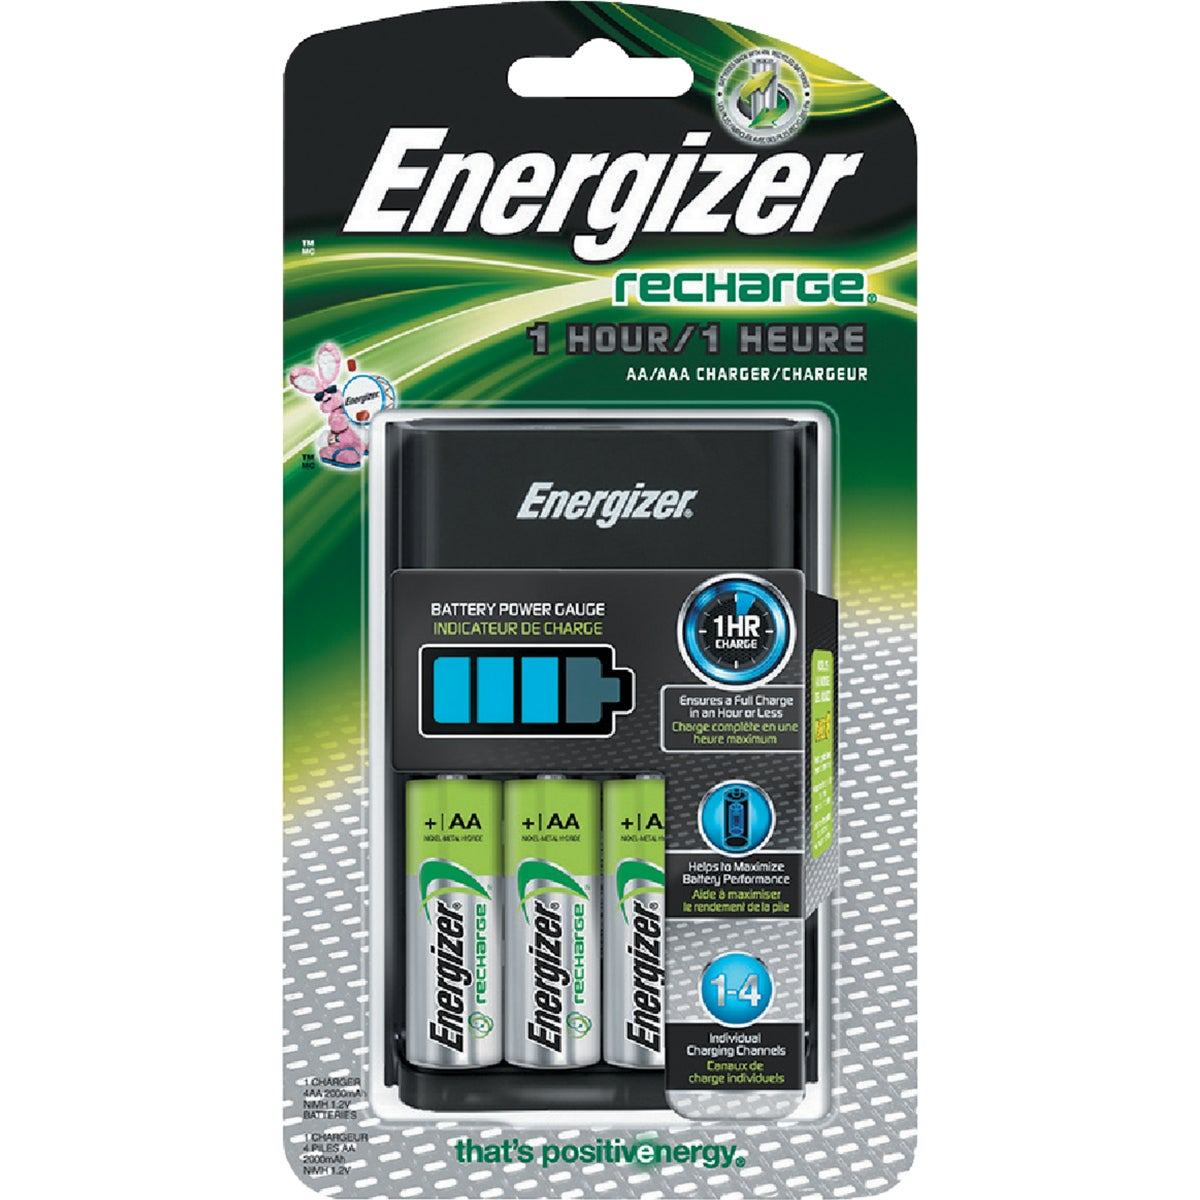 15 MINUTE CHARGER - CH15MNCP-4 by Energizer